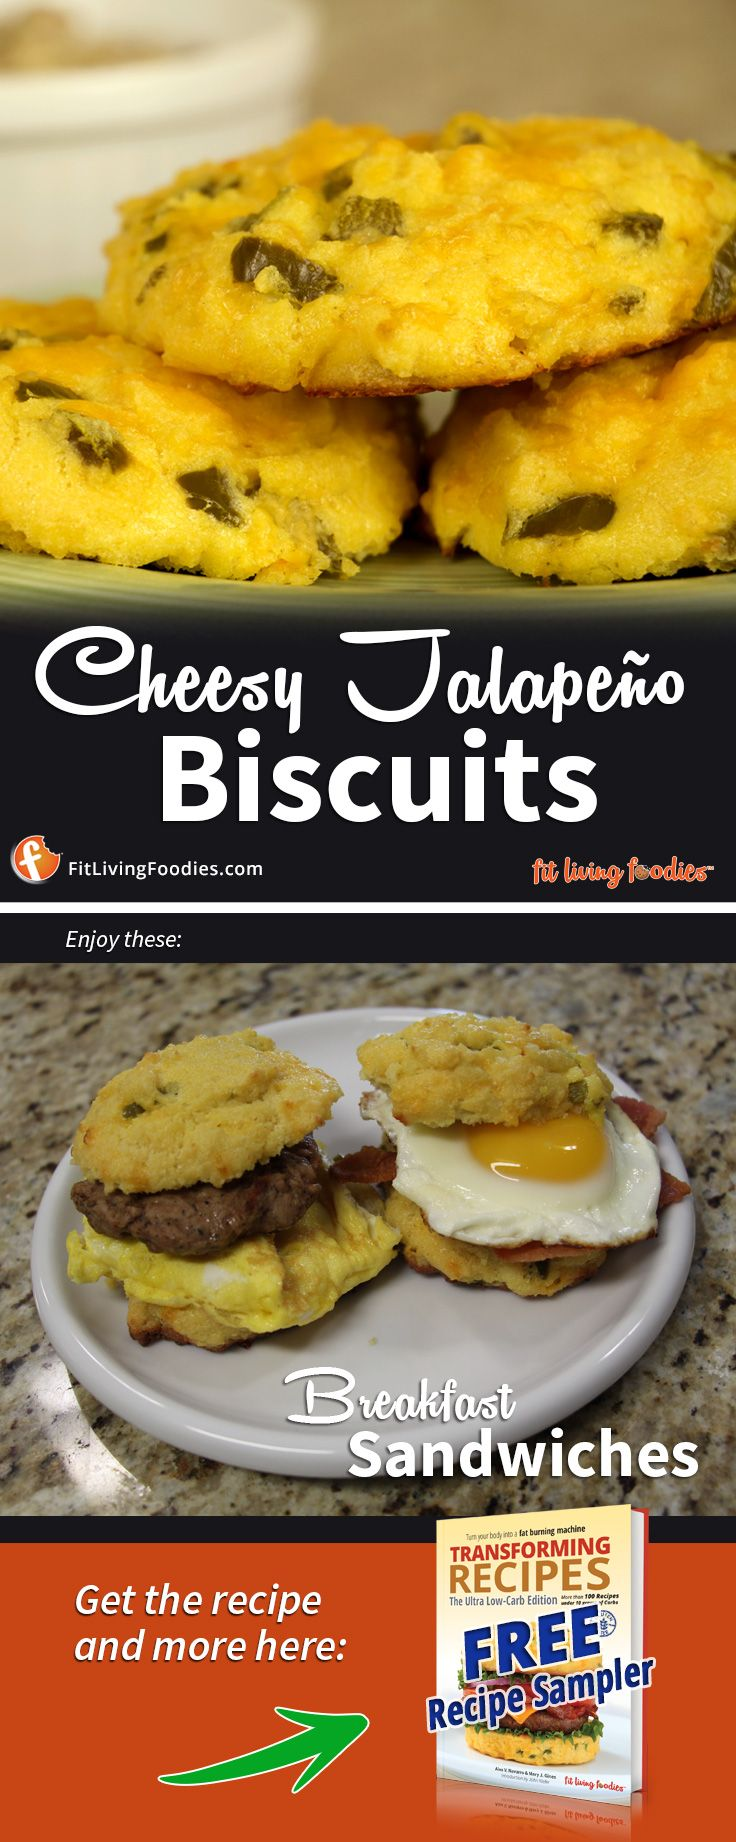 Ultra Low-Carb Cheesy Jalapeno Biscuits! Featured on the burger on the cover of our cookbook. Make breakfast sandwiches, sliders, biscuits and gravy...the options are endless! They're great as just a side!  #lowcarb #keto #carbnite #carbbackloading